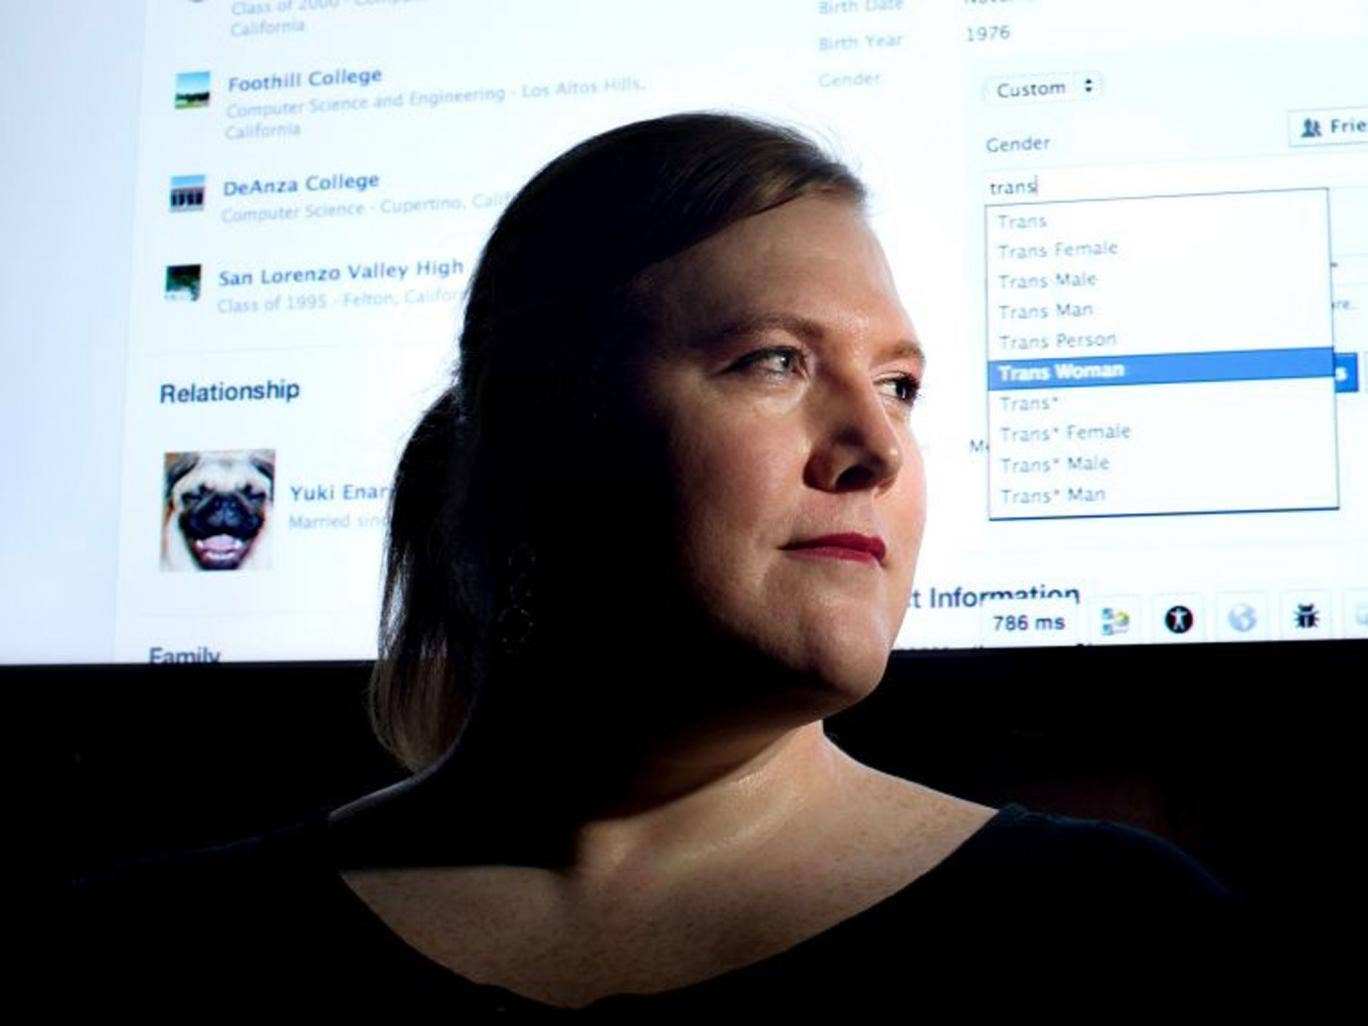 Facebook software engineer Brielle Harrison demonstrates Facebook's expanded options for gender identification at her company's Menlo Park, Calif., headquarters.  Facebook is adding a customizable option with about 50 different terms people can use to ide